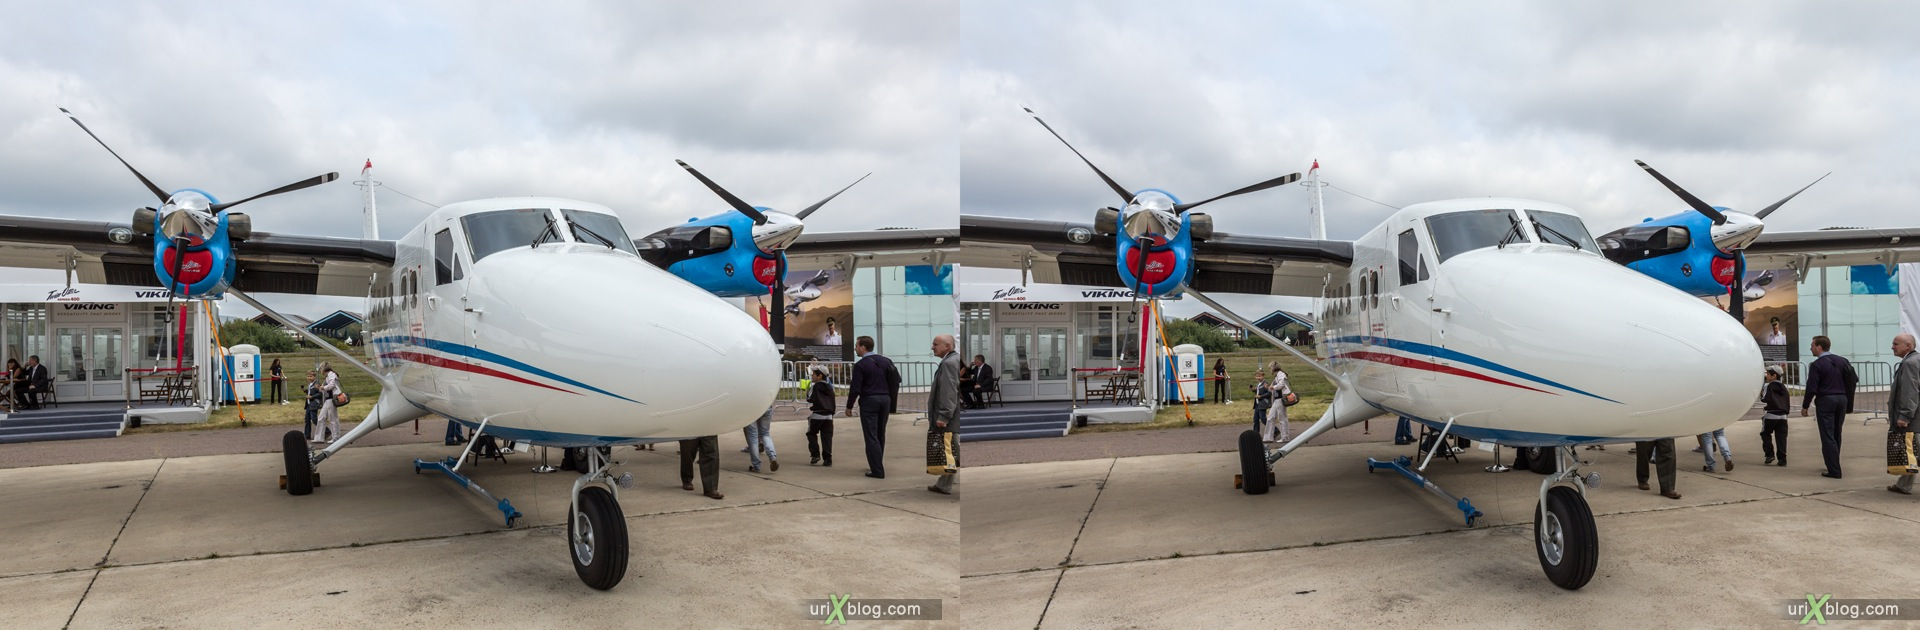 2013, Series 400 Twin Otter, MAKS, International Aviation and Space Salon, Russia, Ramenskoye airfield, airplane, 3D, stereo pair, cross-eyed, crossview, cross view stereo pair, stereoscopic